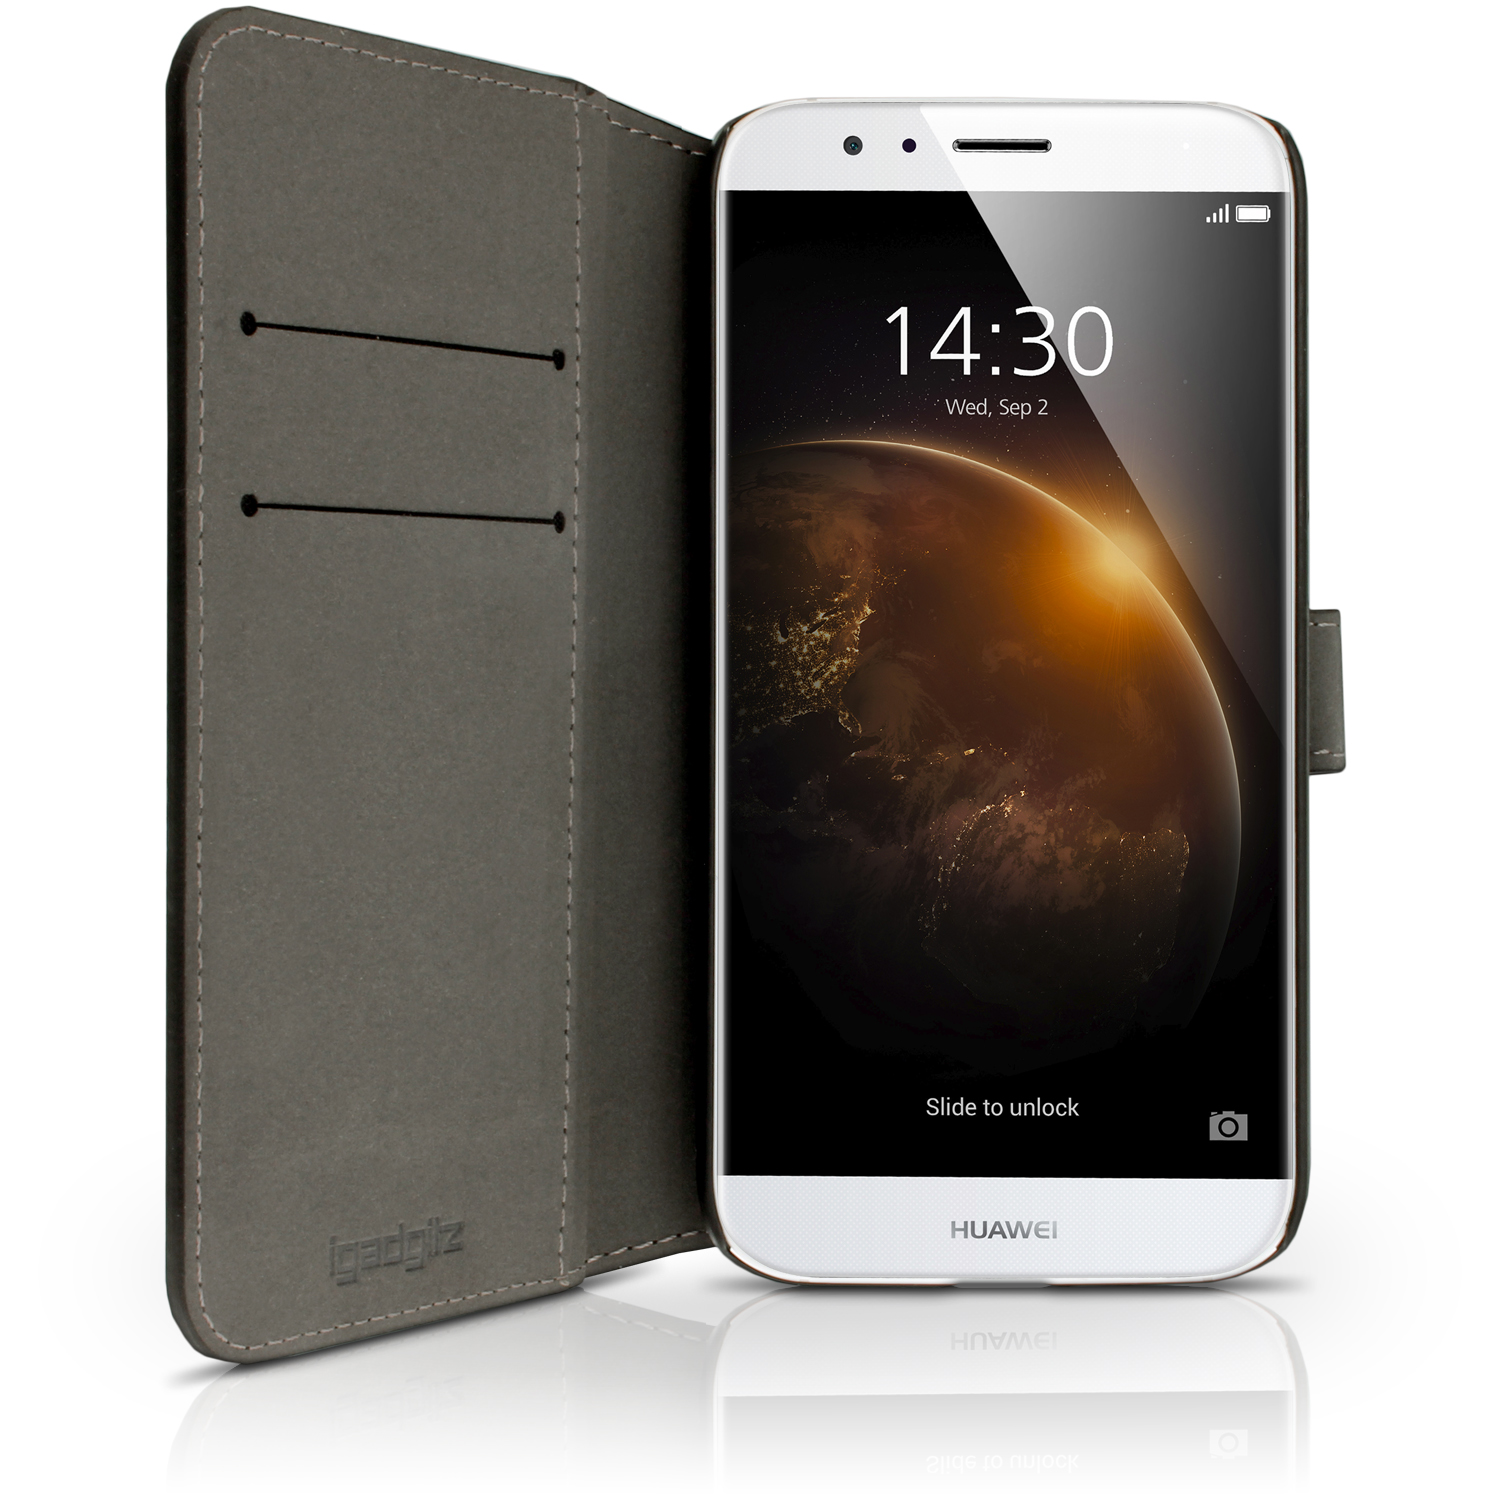 Details about PU Leather Skin Wallet Case for Huawei G8 Flip Stand Cover +  Screen Protector